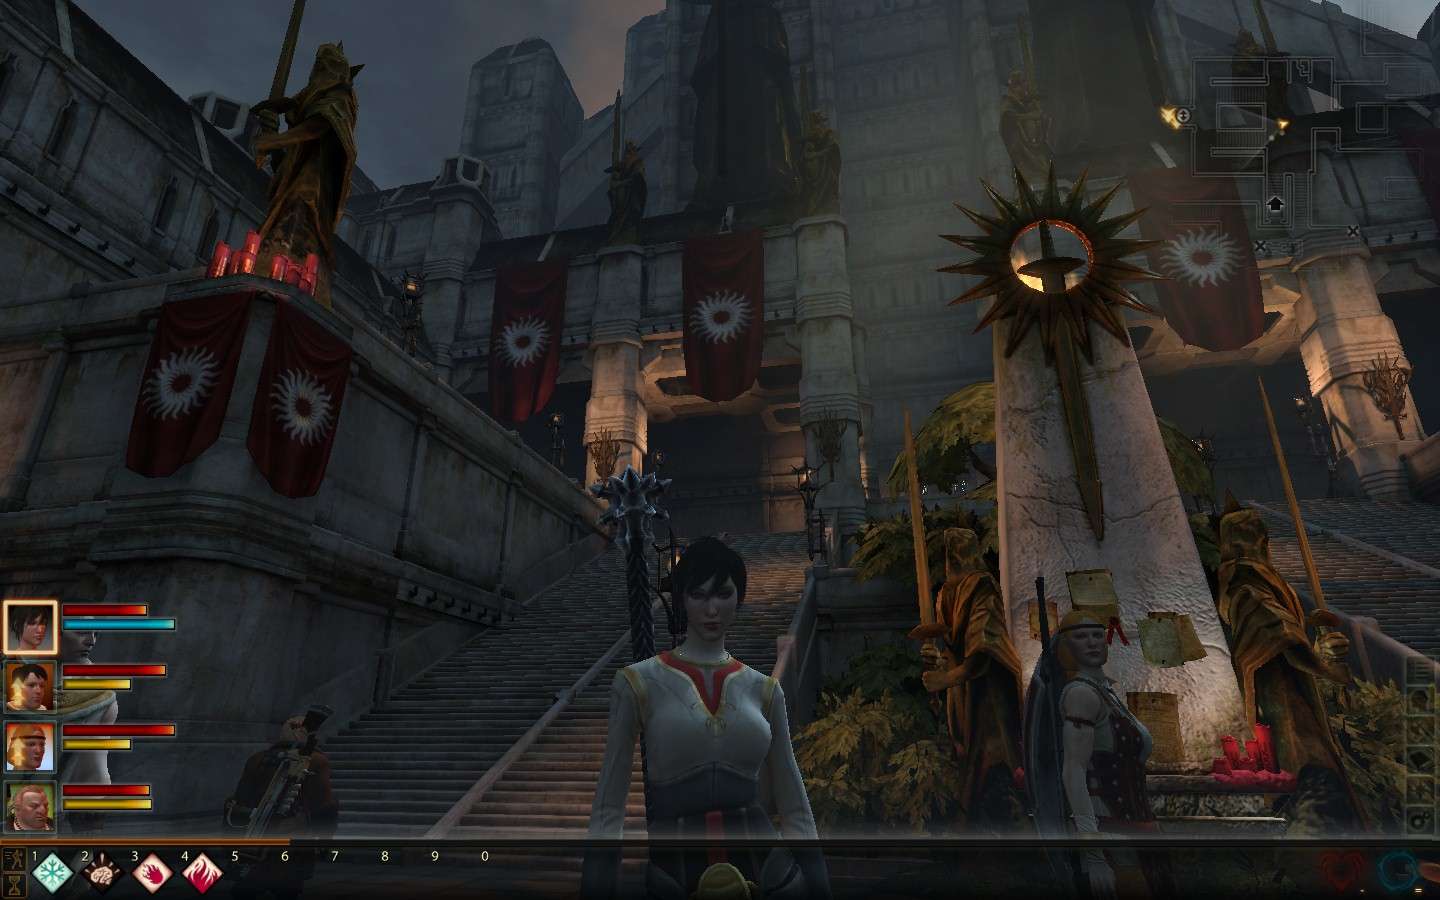 Dragon-Age2-City-Screenshot.jpg